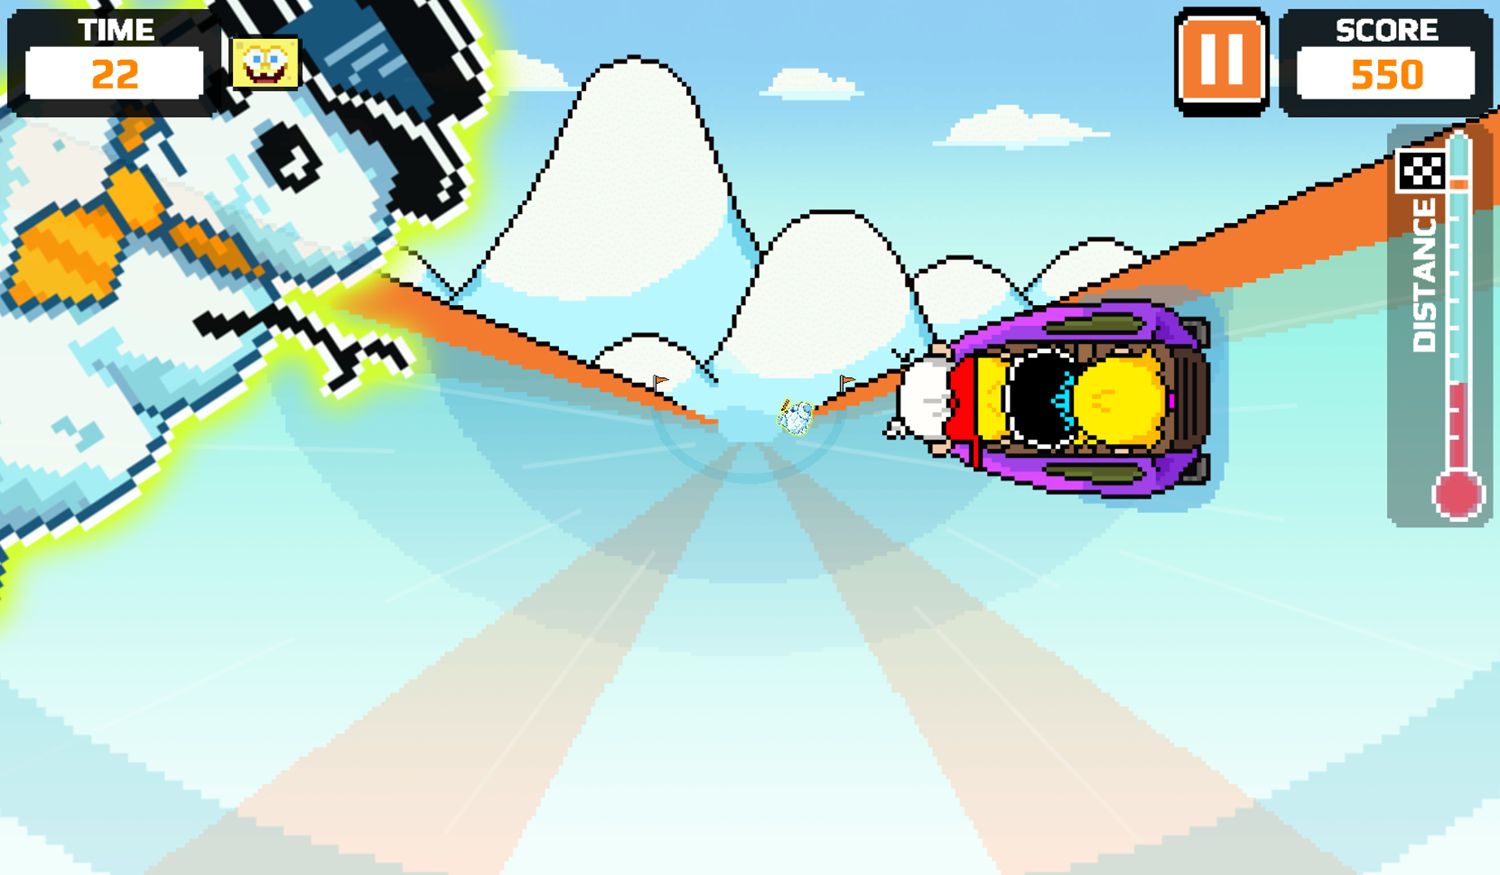 Nick Champions of the Chill 2 Game Loud Loud Loud Sled Gameplay Screenshot.